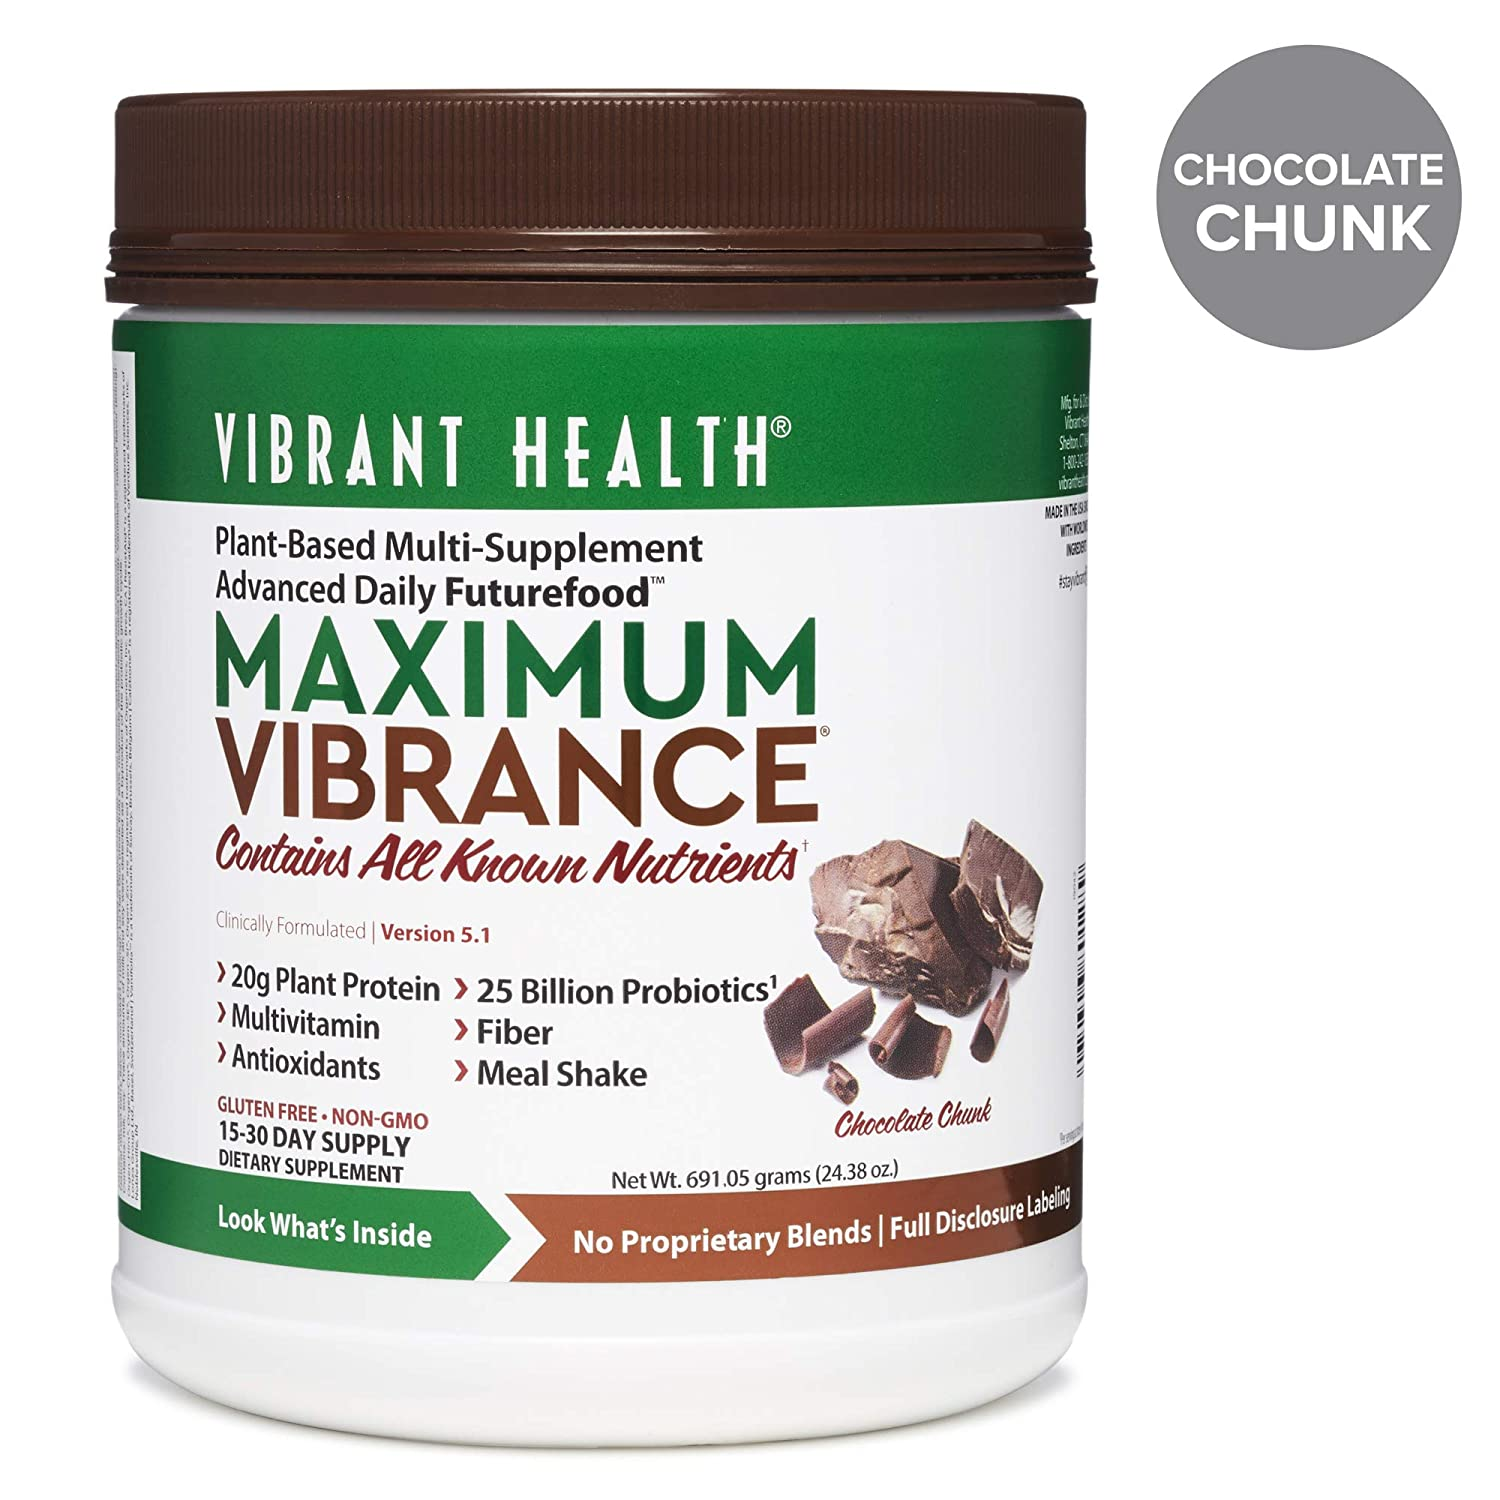 Vibrant Health - Maximum Vibrance, Plant-Based Meal Replacement Rich with Vitamins, Minerals, Antioxidants, and Protein, Gluten Free, Vegetarian, Non-GMO, Chocolate Chunk, 15 Servings